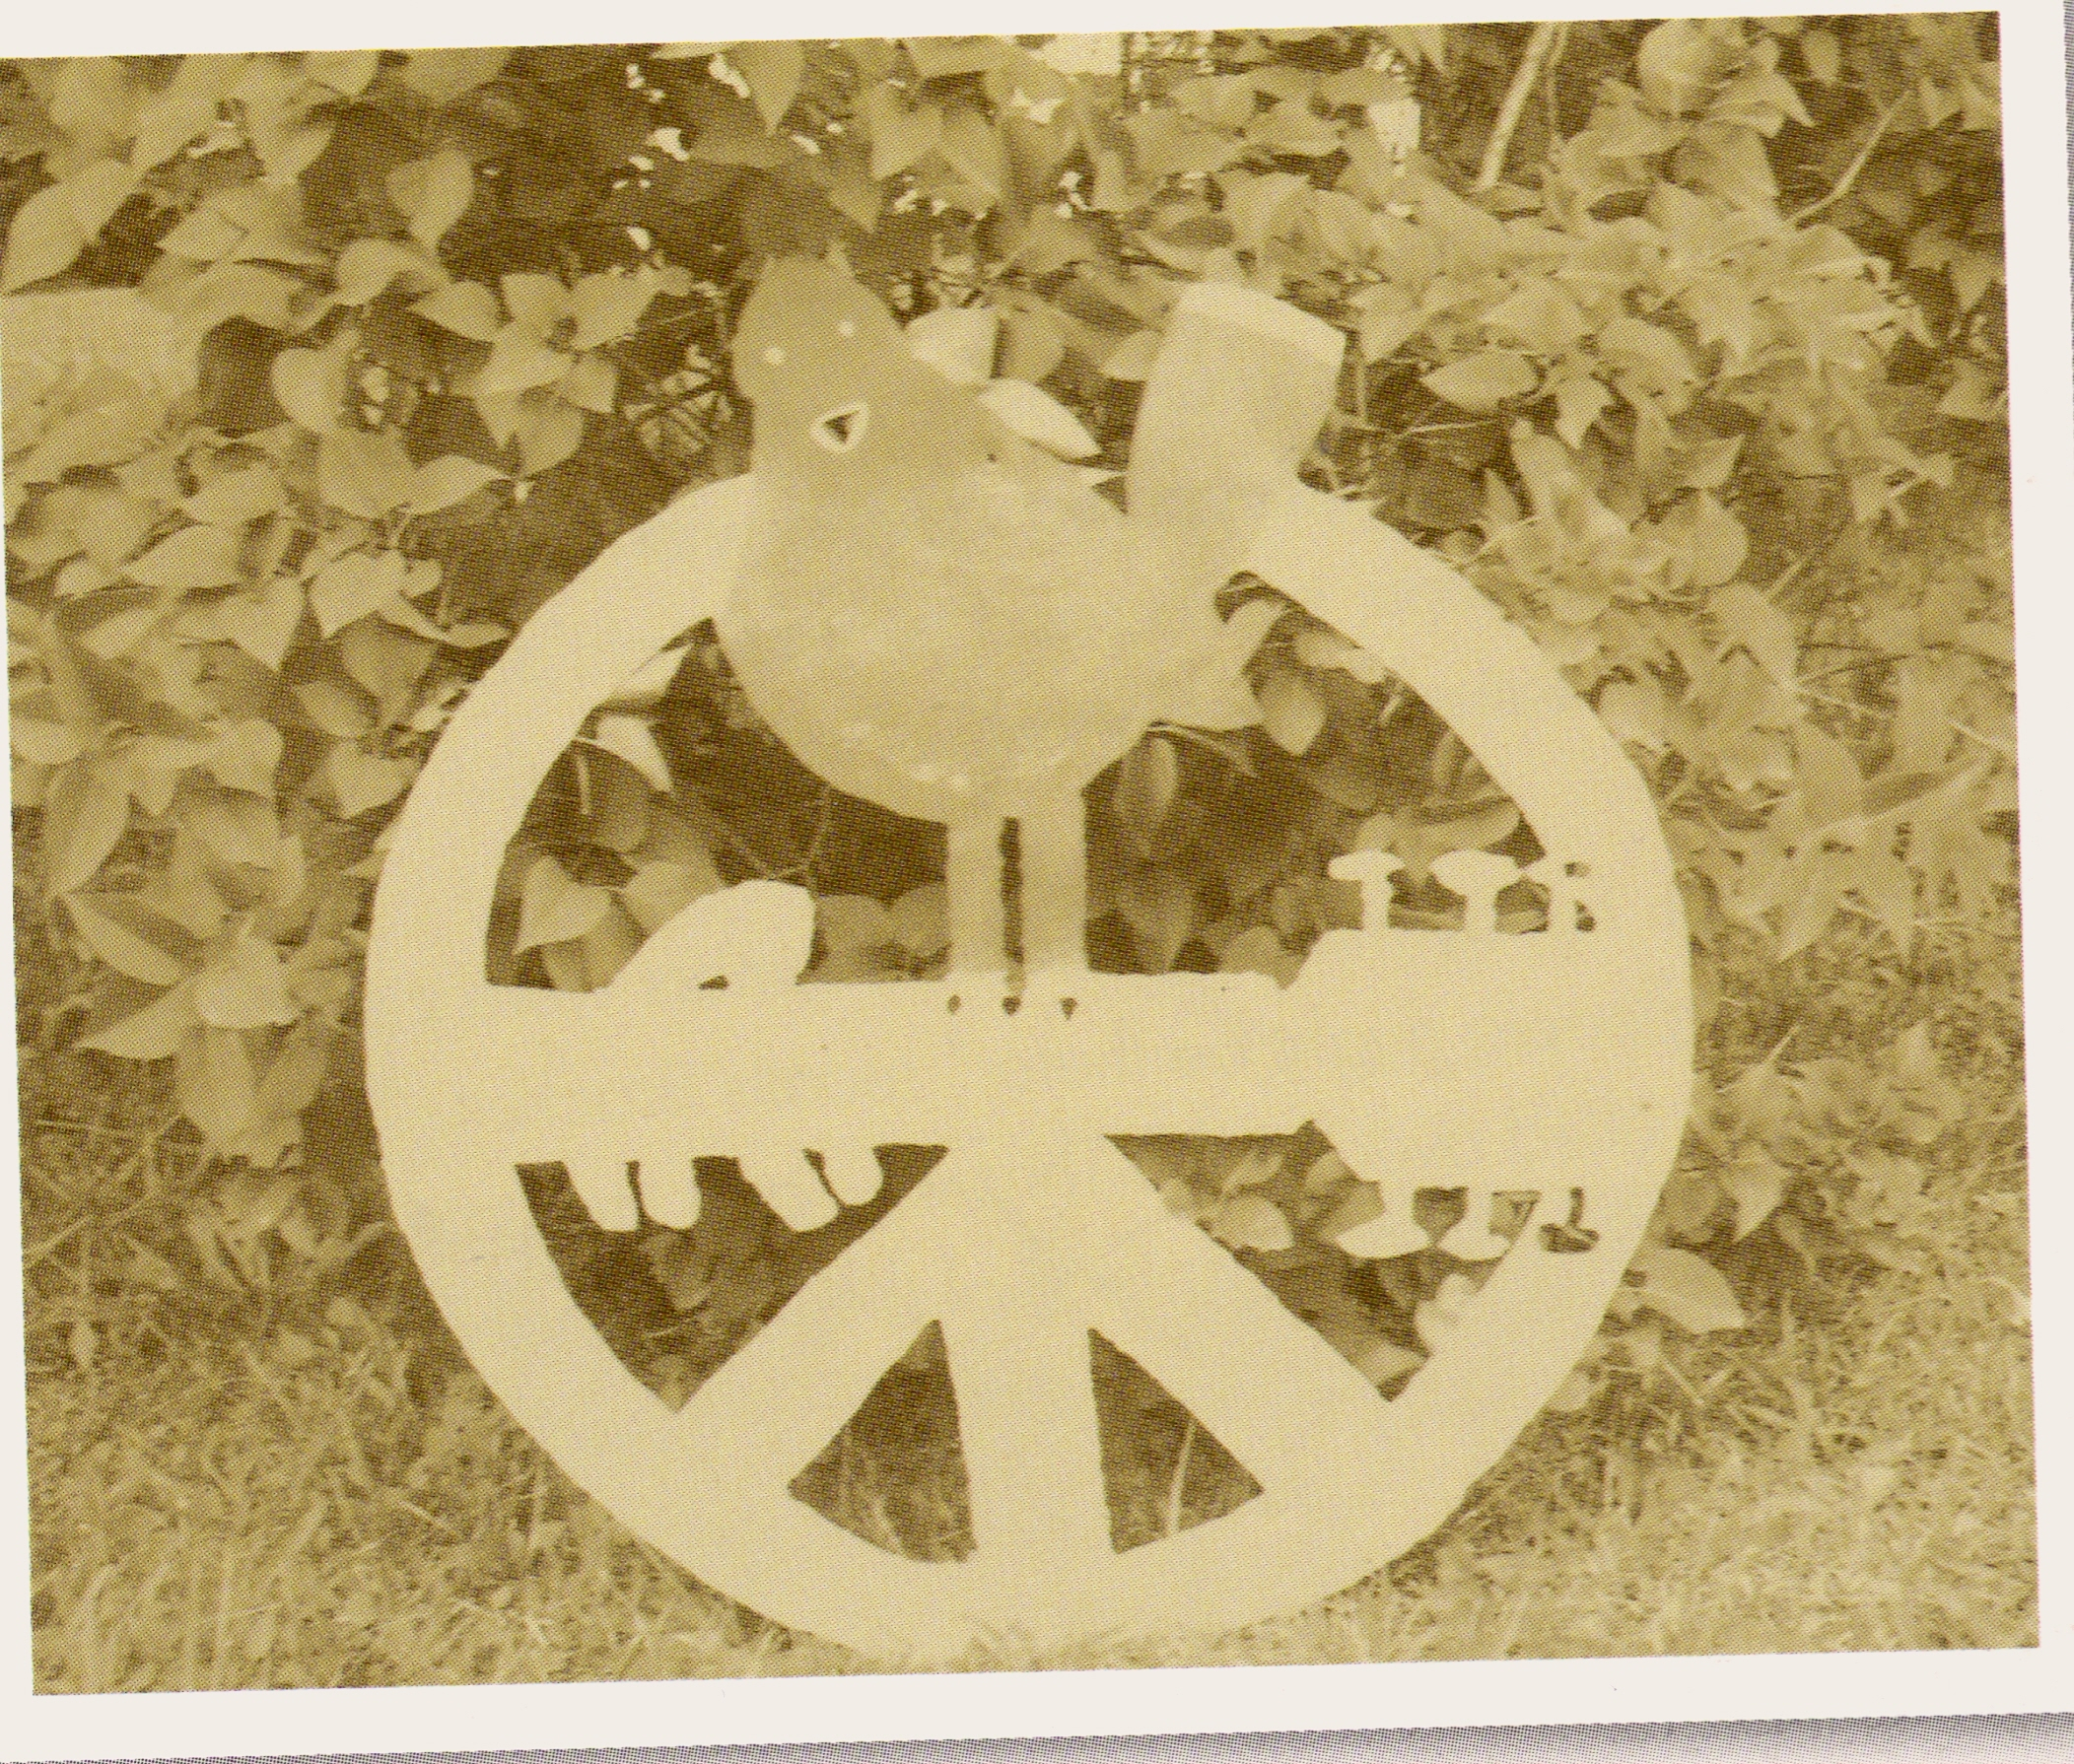 This peace sign and dove cut-out is an exact duplicate of the one originally hand-crafted by Ken VanLoan